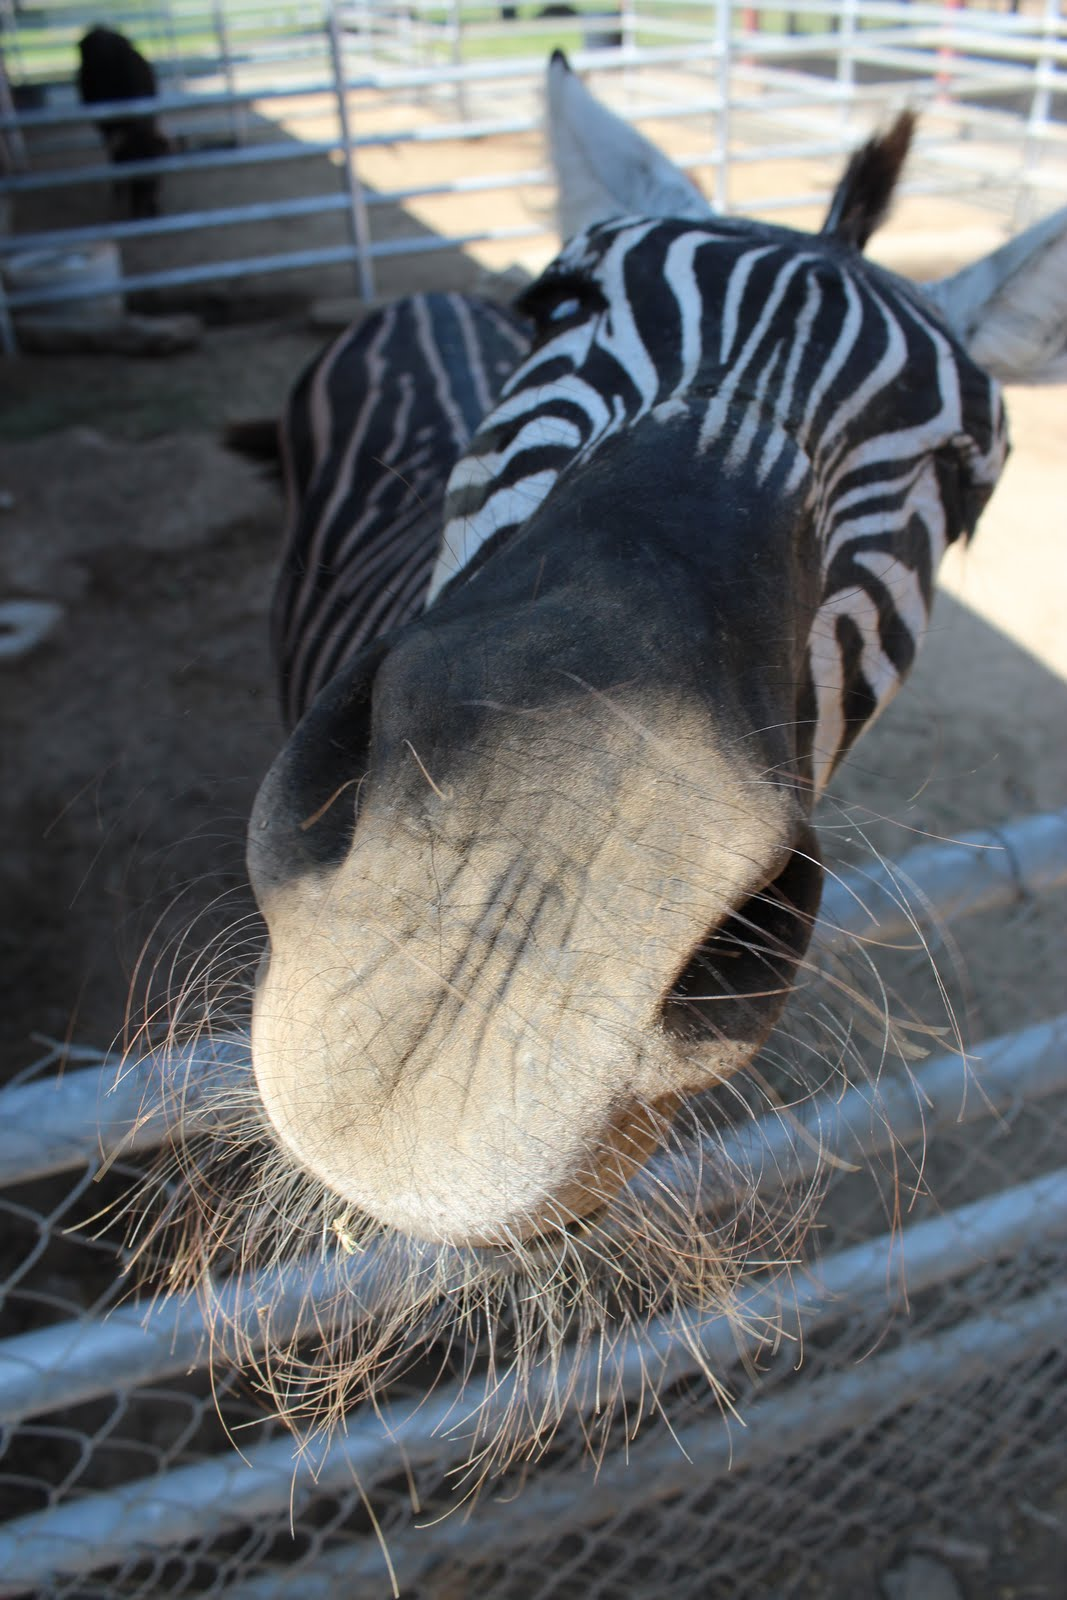 Zebra Petting Zoo Best Petting Zoo in Los